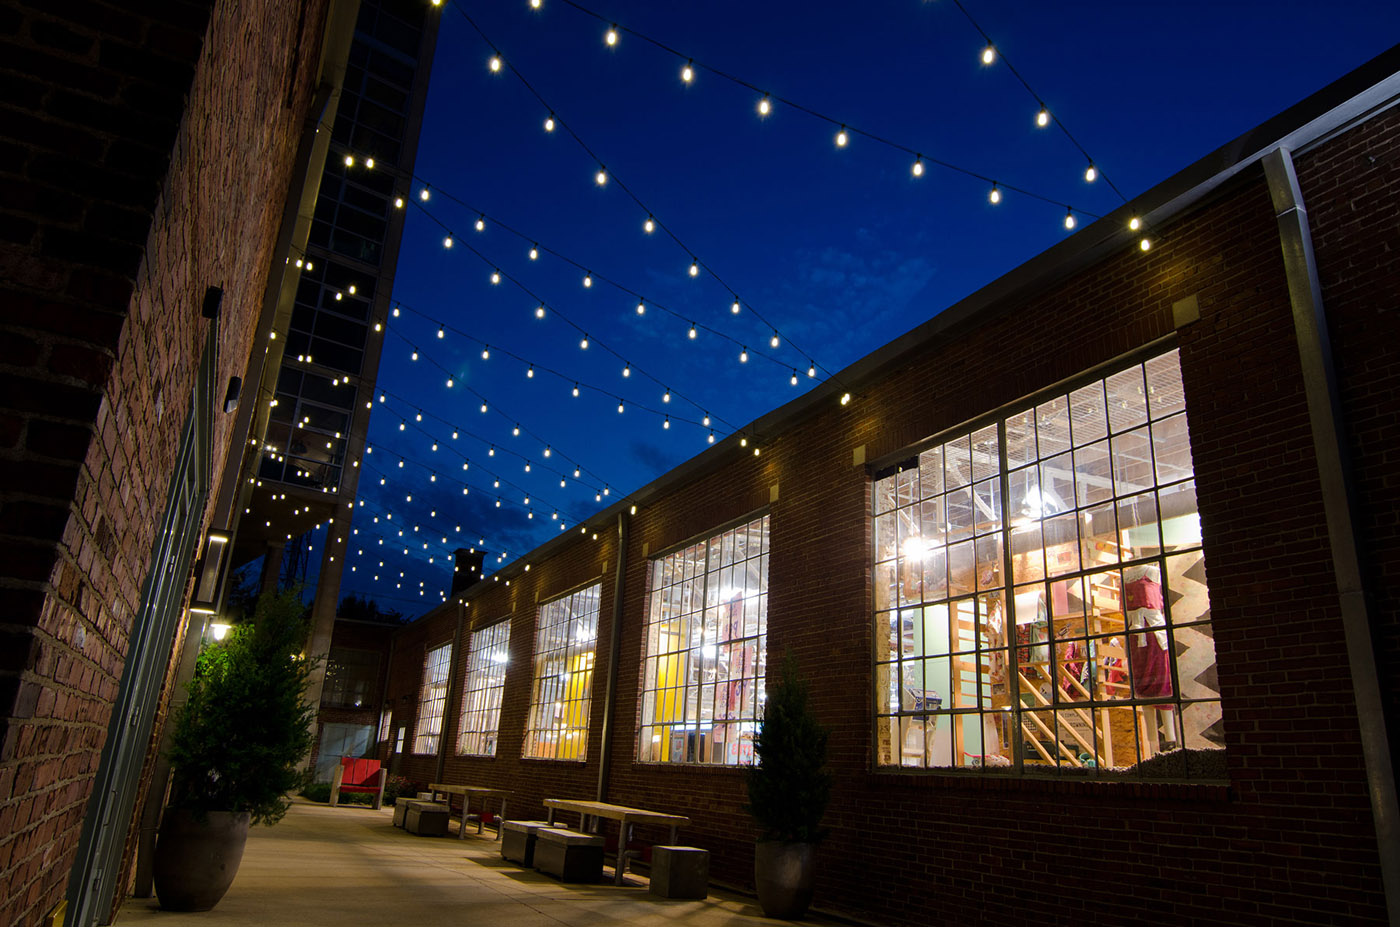 Outdoor Commercial Lighting Seattle commercial outdoor lighting perfect for every brick hospitality dining workwithnaturefo